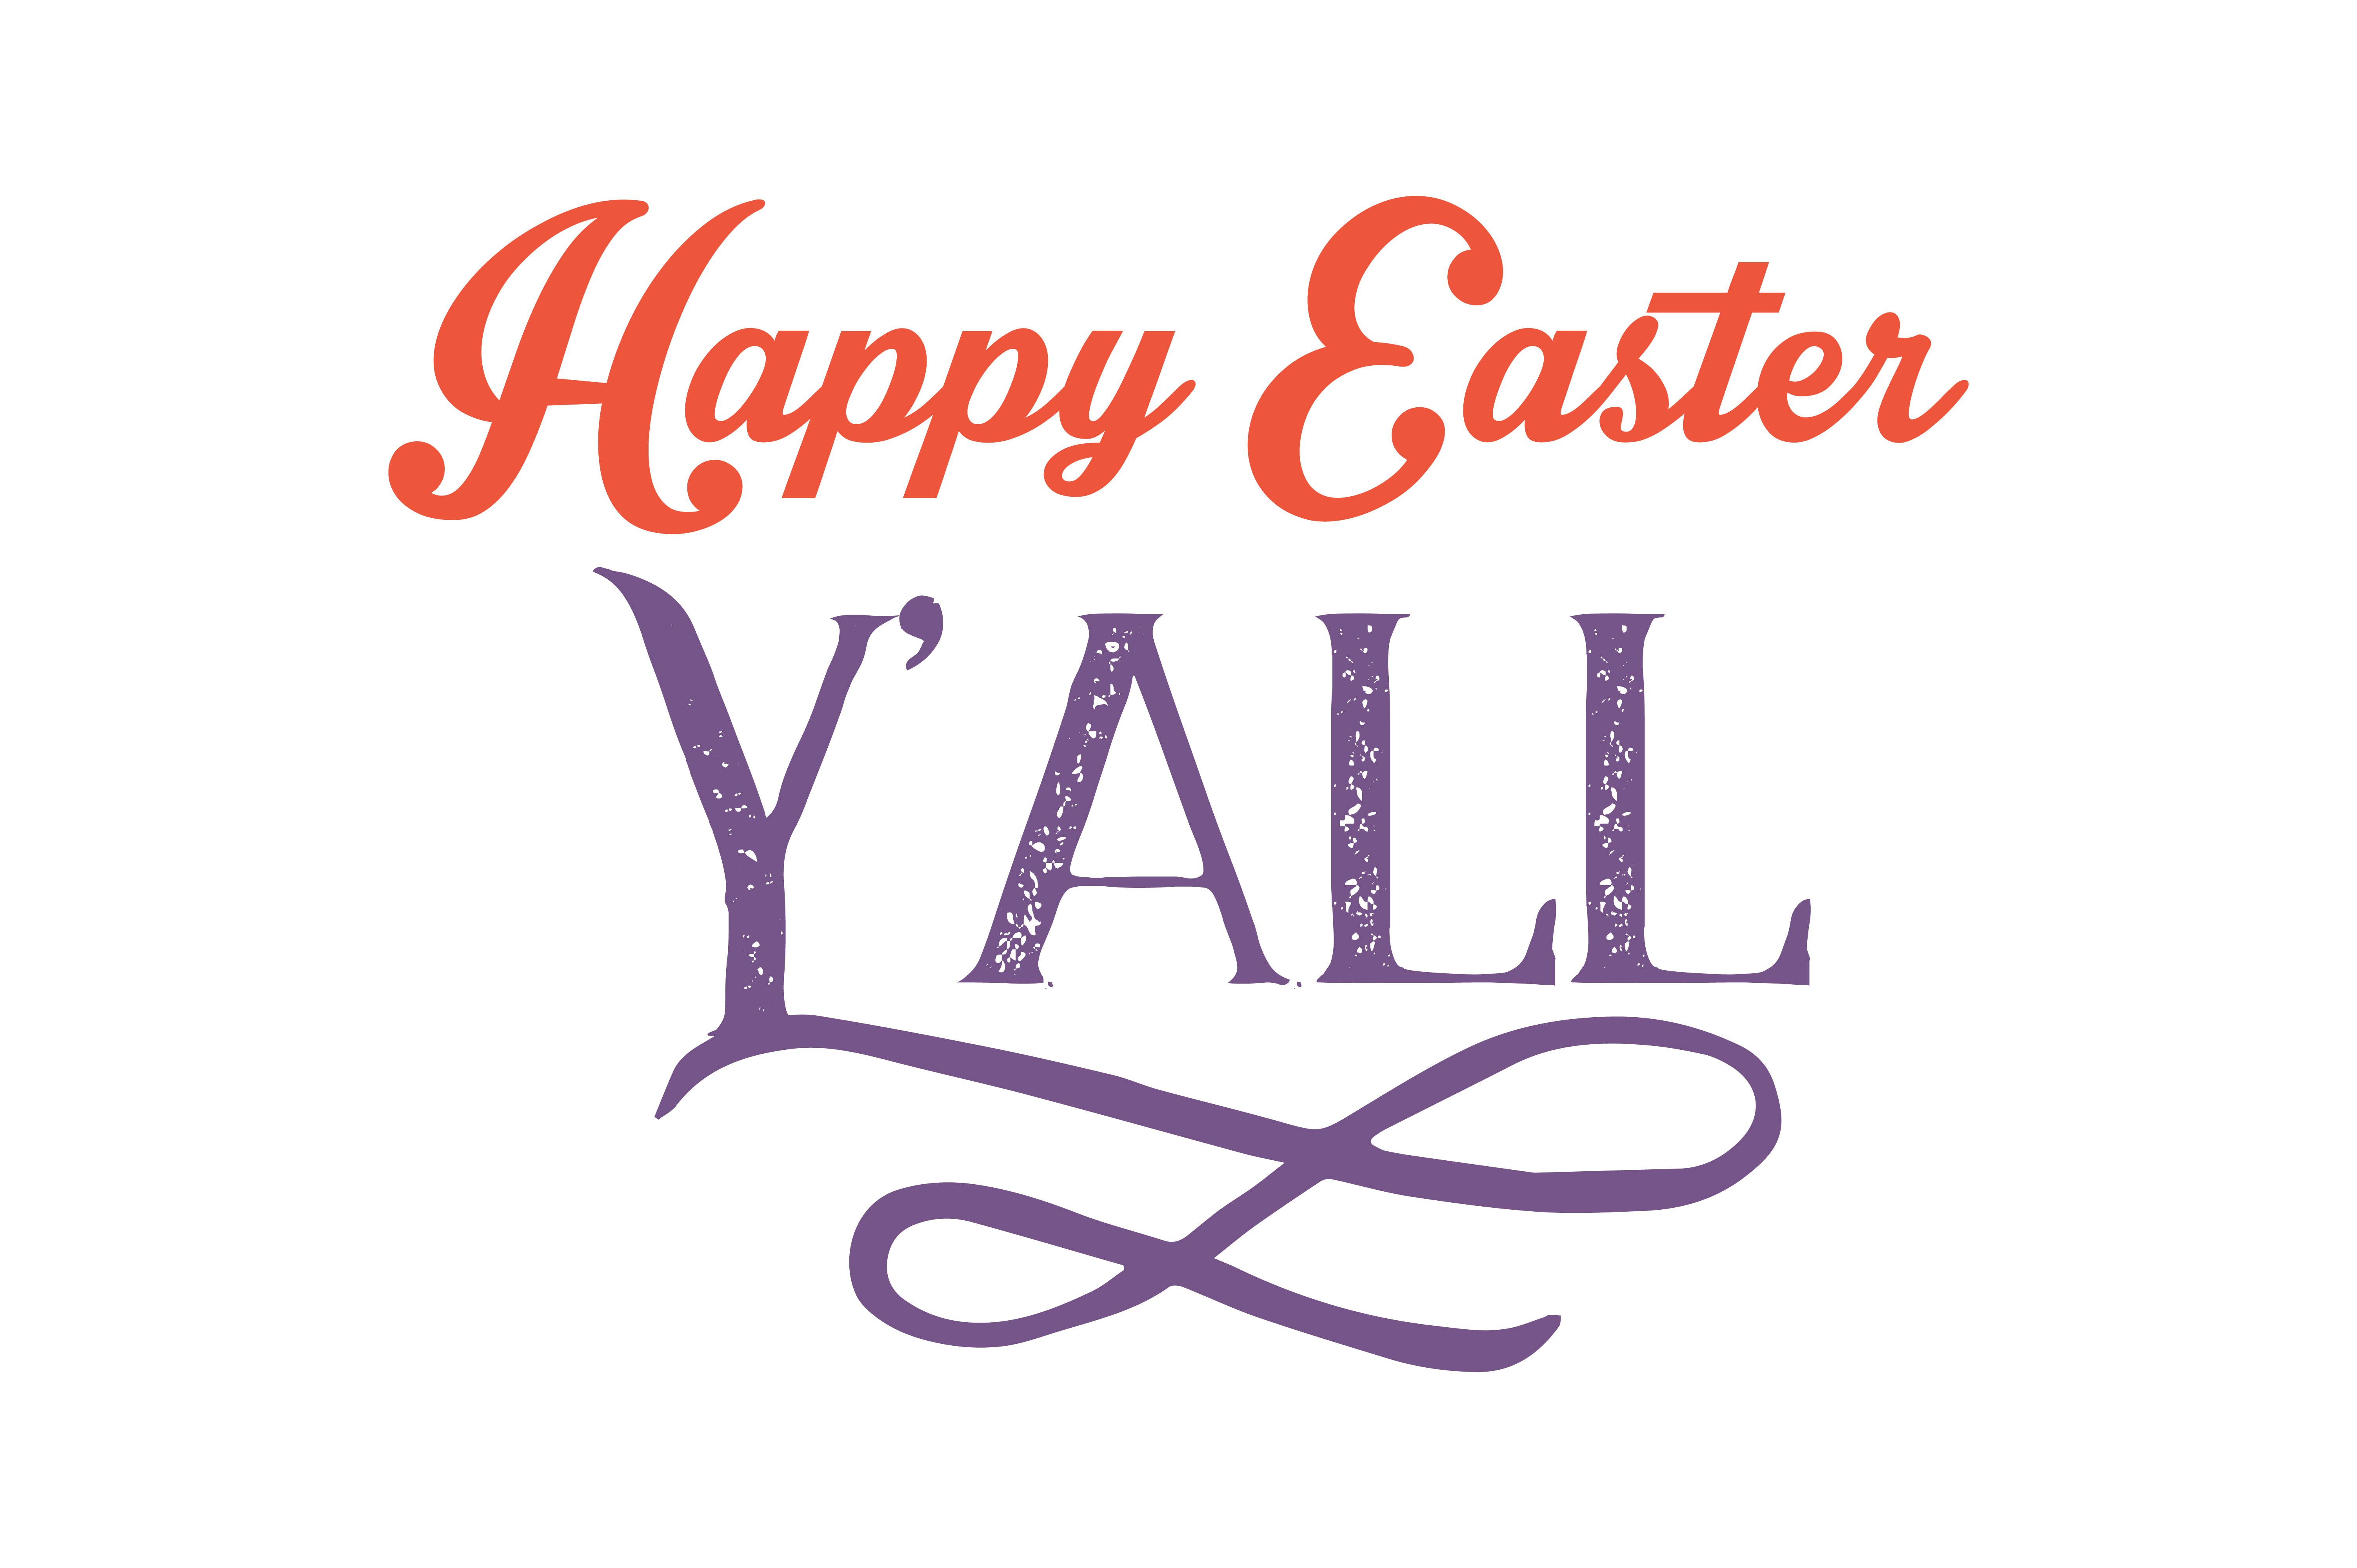 Download Free Happy Easter Y All Quote Svg Cut Graphic By Thelucky Creative for Cricut Explore, Silhouette and other cutting machines.